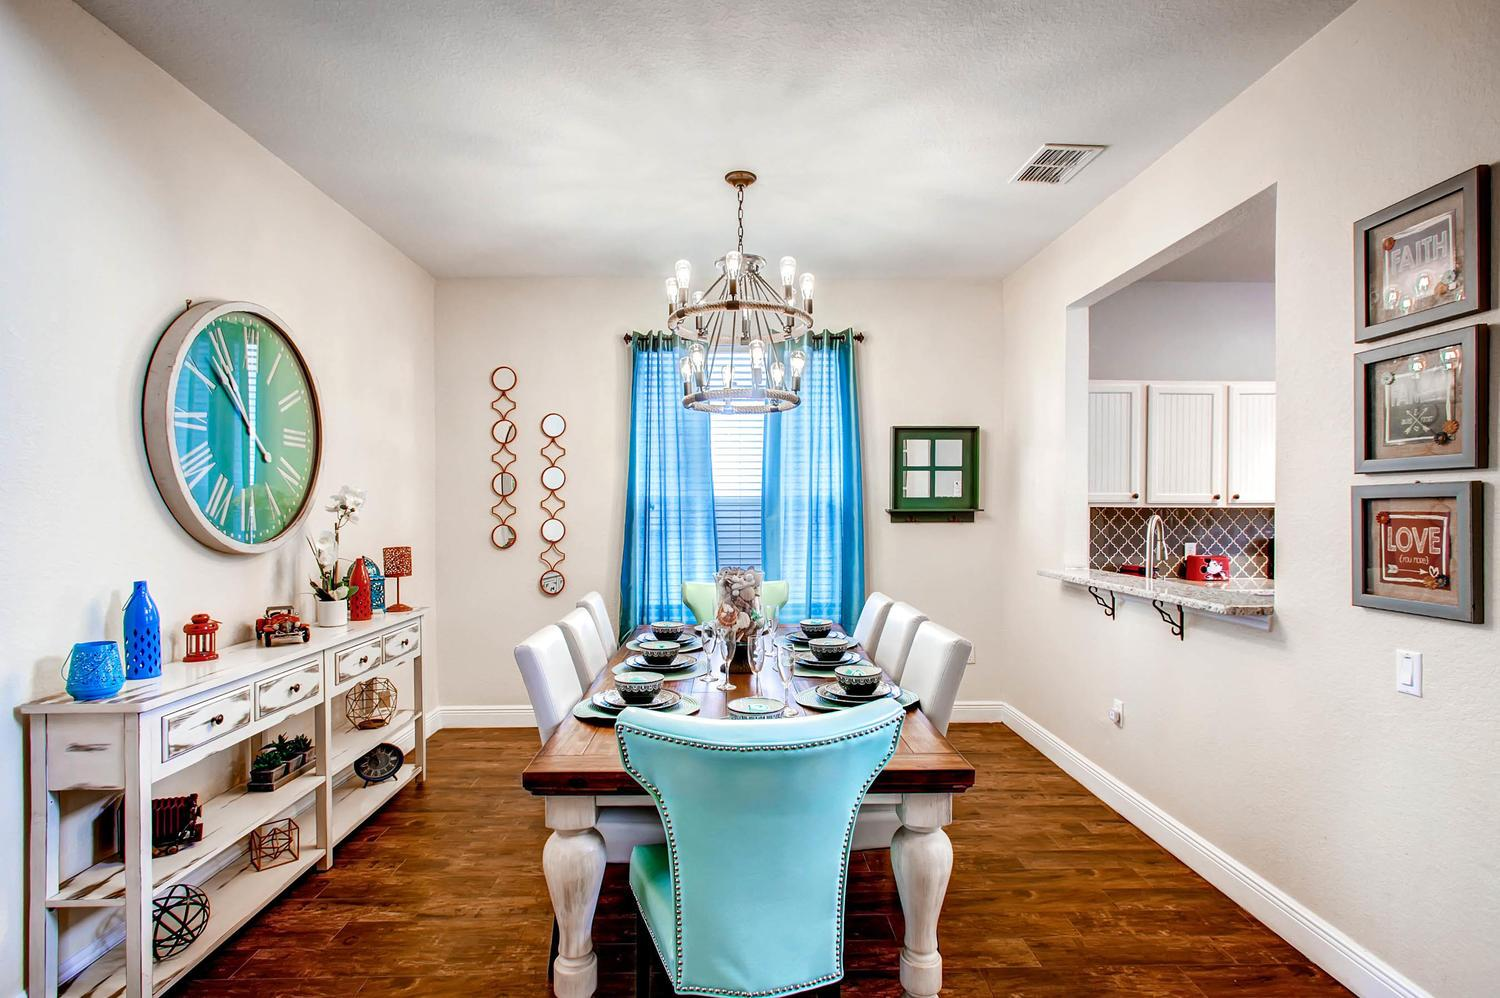 Formal Dining Area with large dining table with  seating for 8